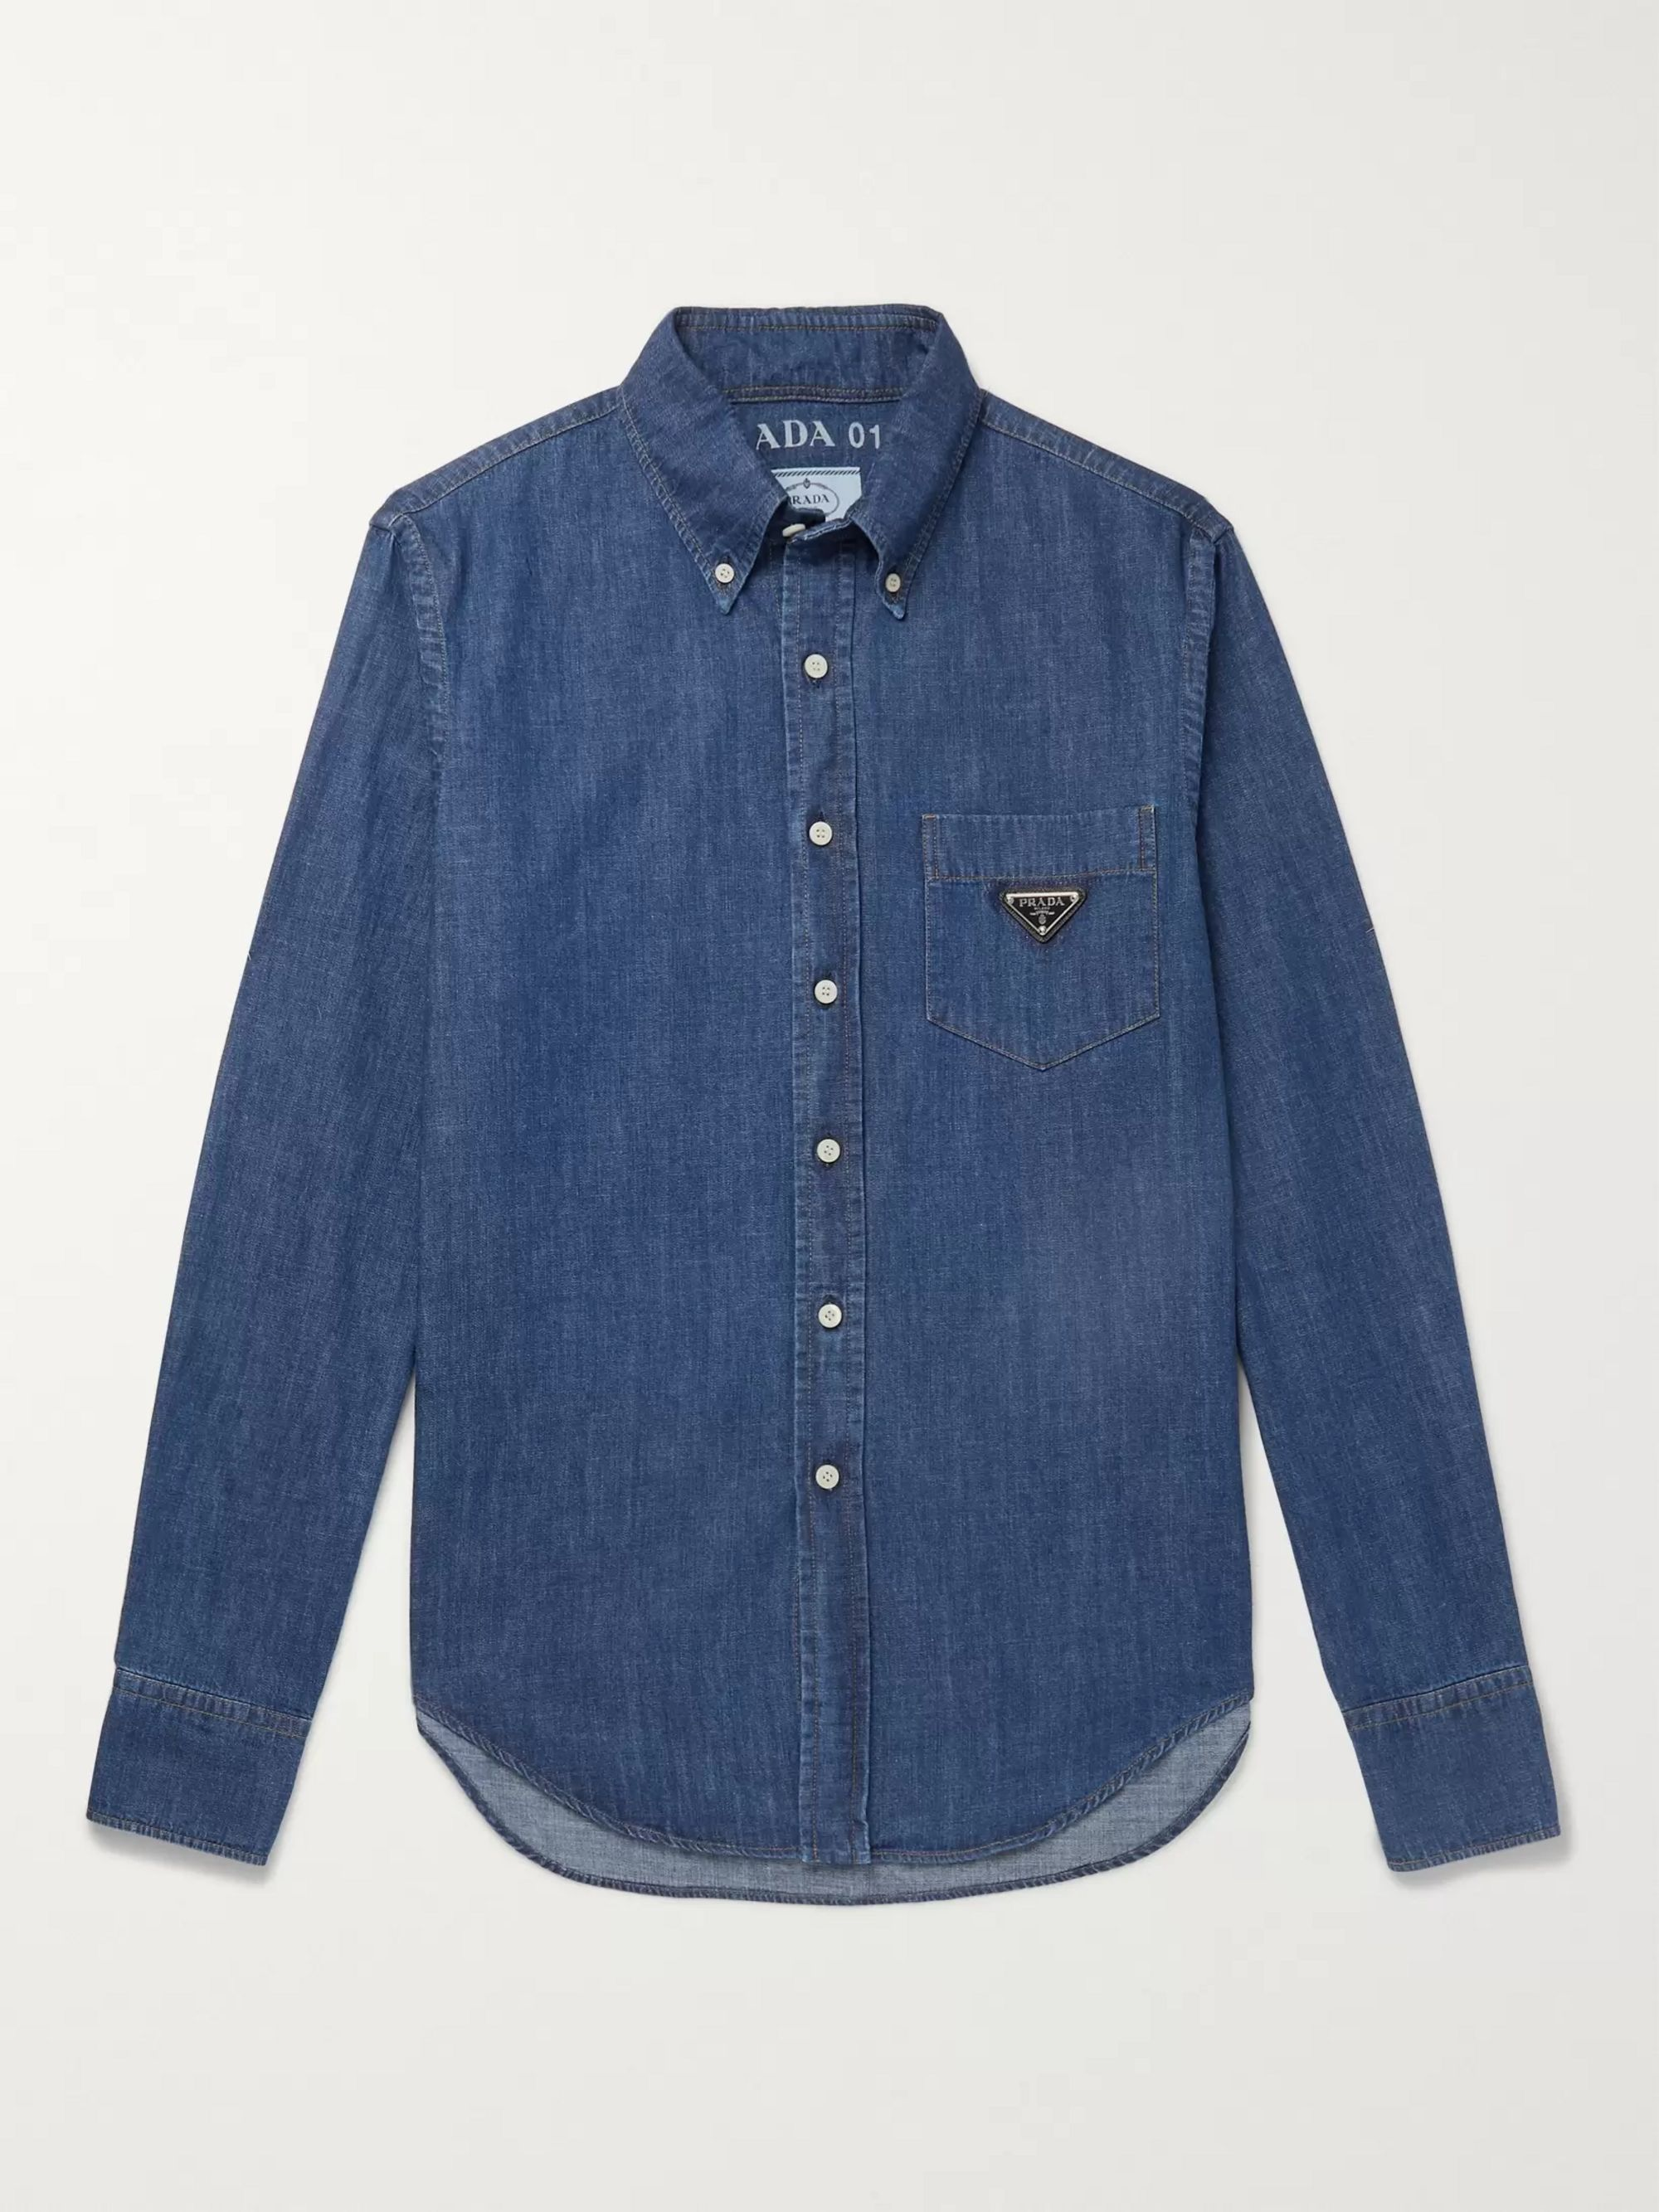 Prada Slim-Fit Button-Down Collar Logo-Appliquéd Denim Shirt